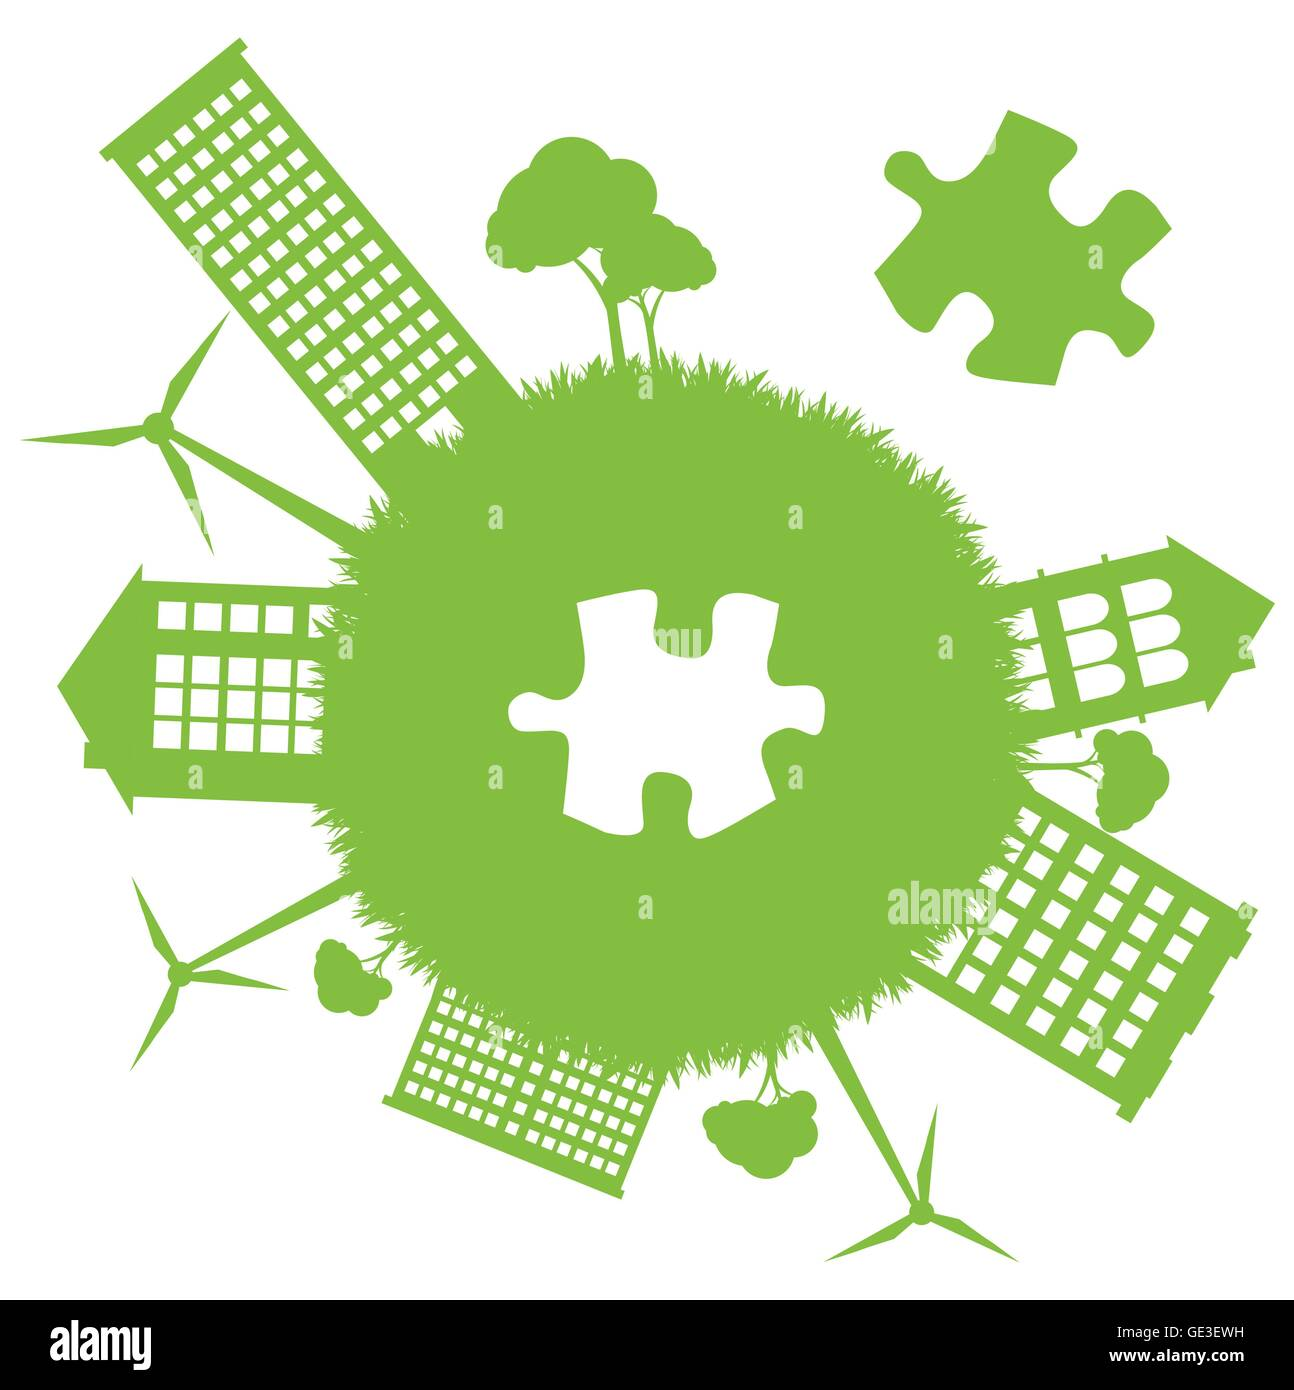 Green Planet Missing Piece Of Jigsaw Puzzle For Poster